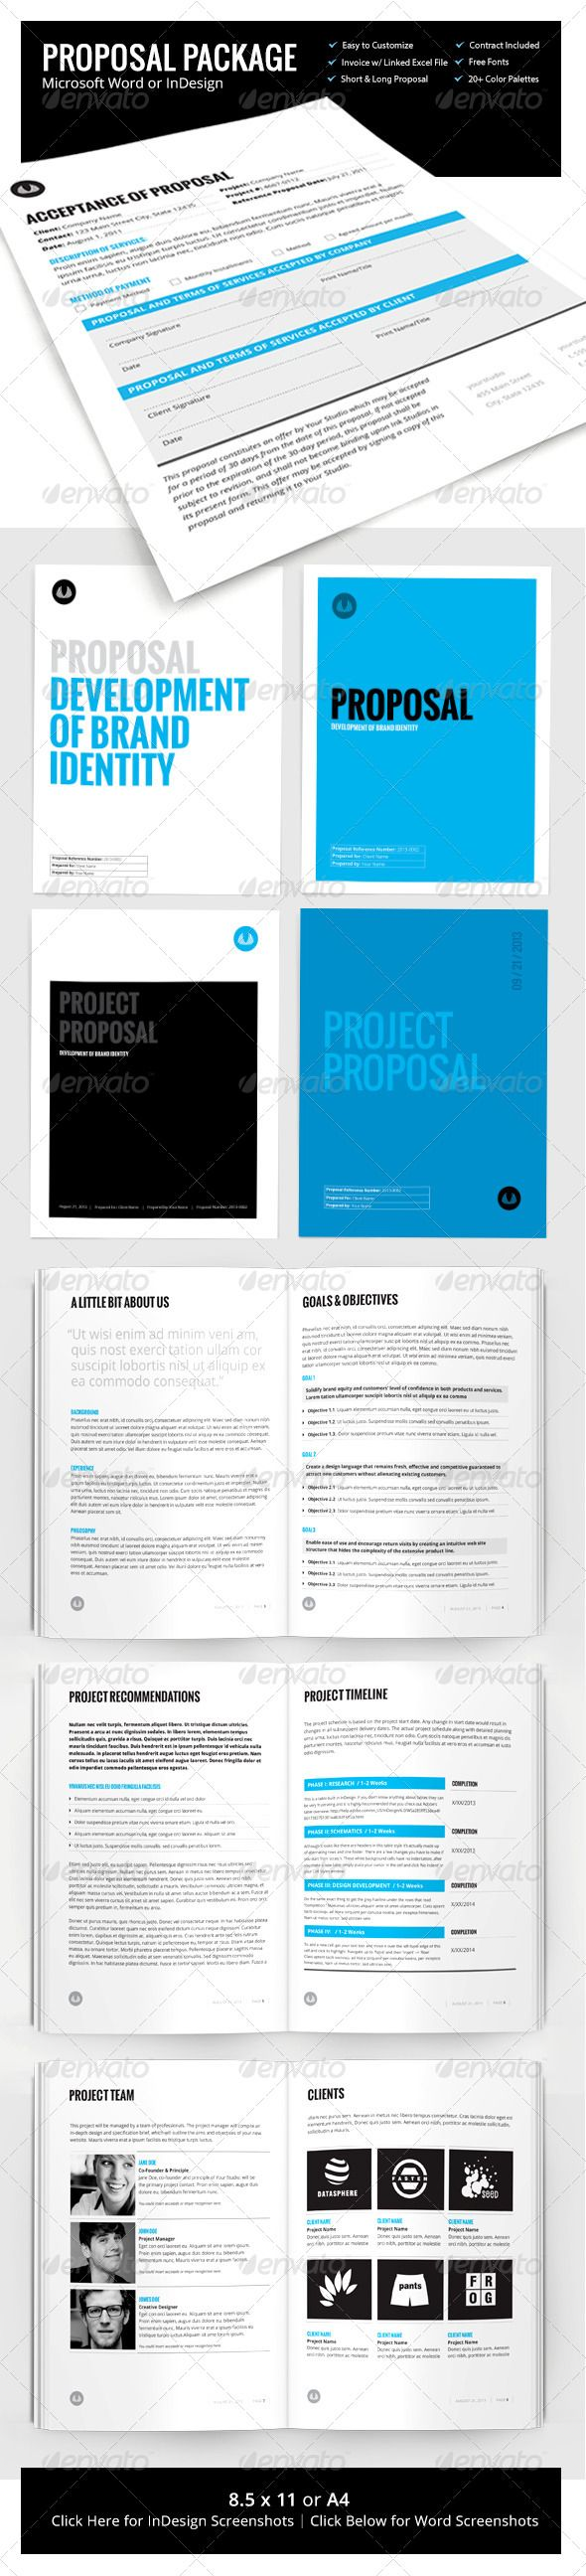 Microsoft Word Proposal Templates absolutely free resume templates – Microsoft Word Business Proposal Template